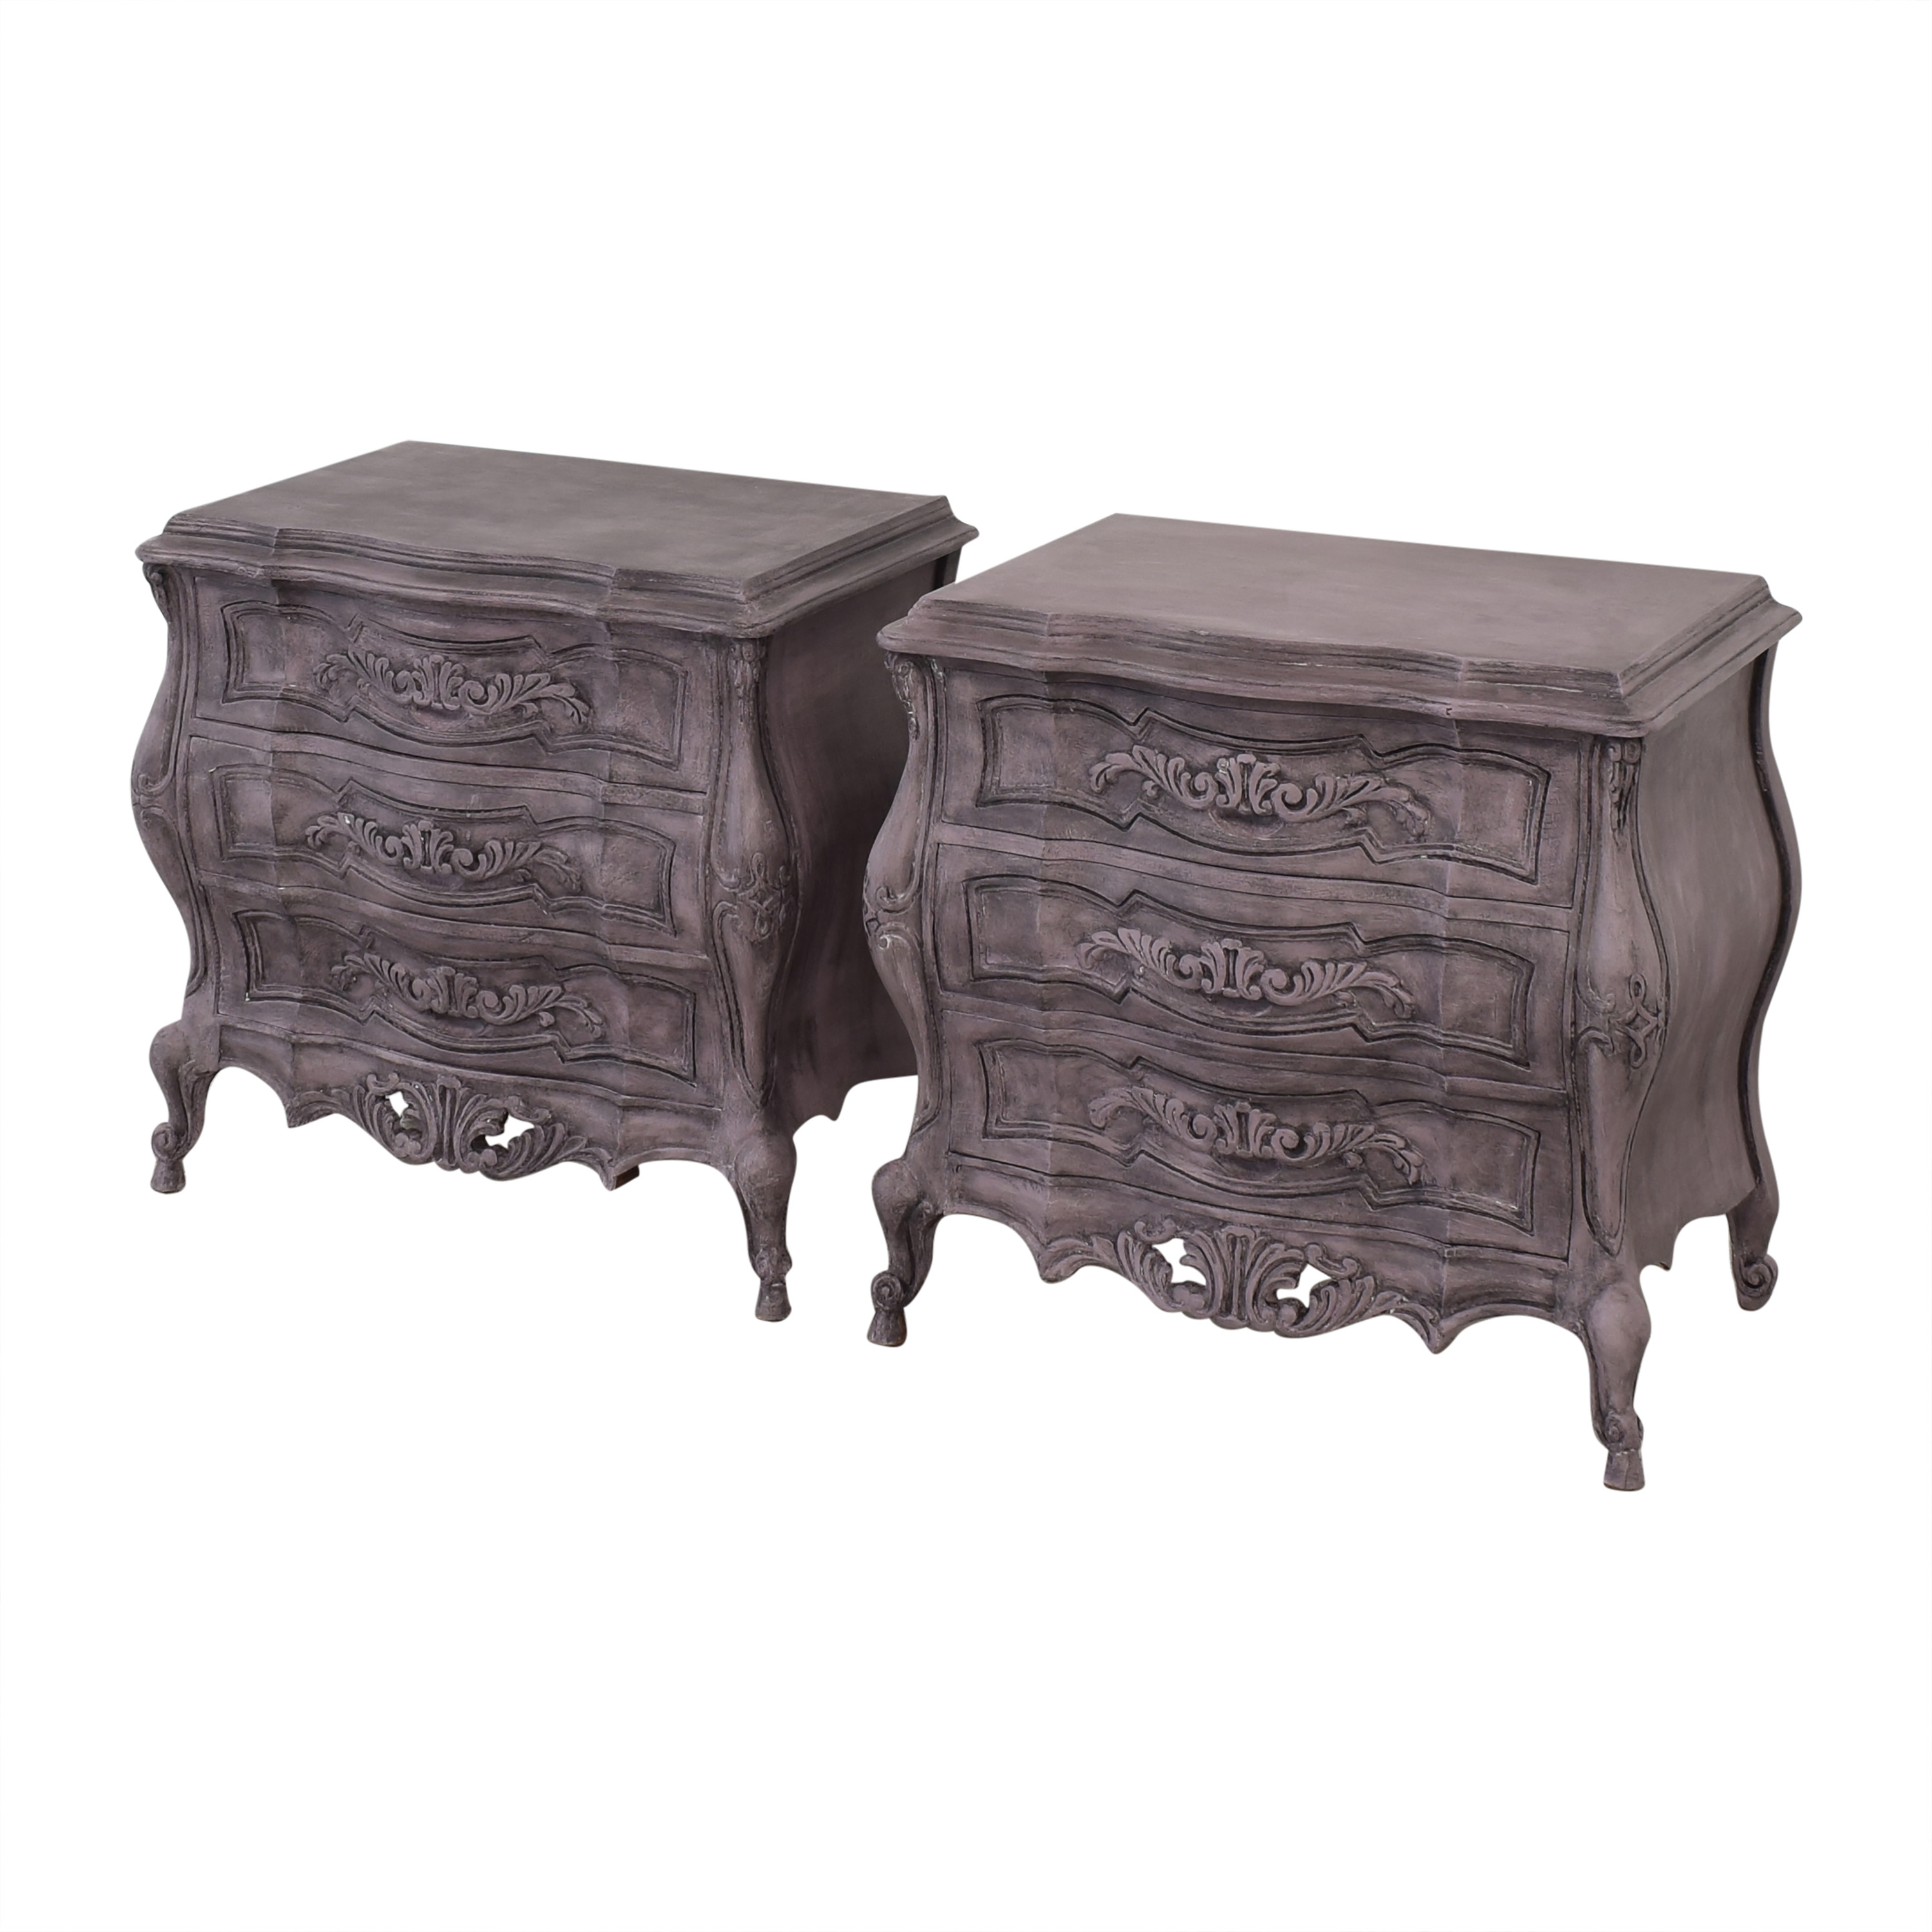 Double Chest Drawers sale